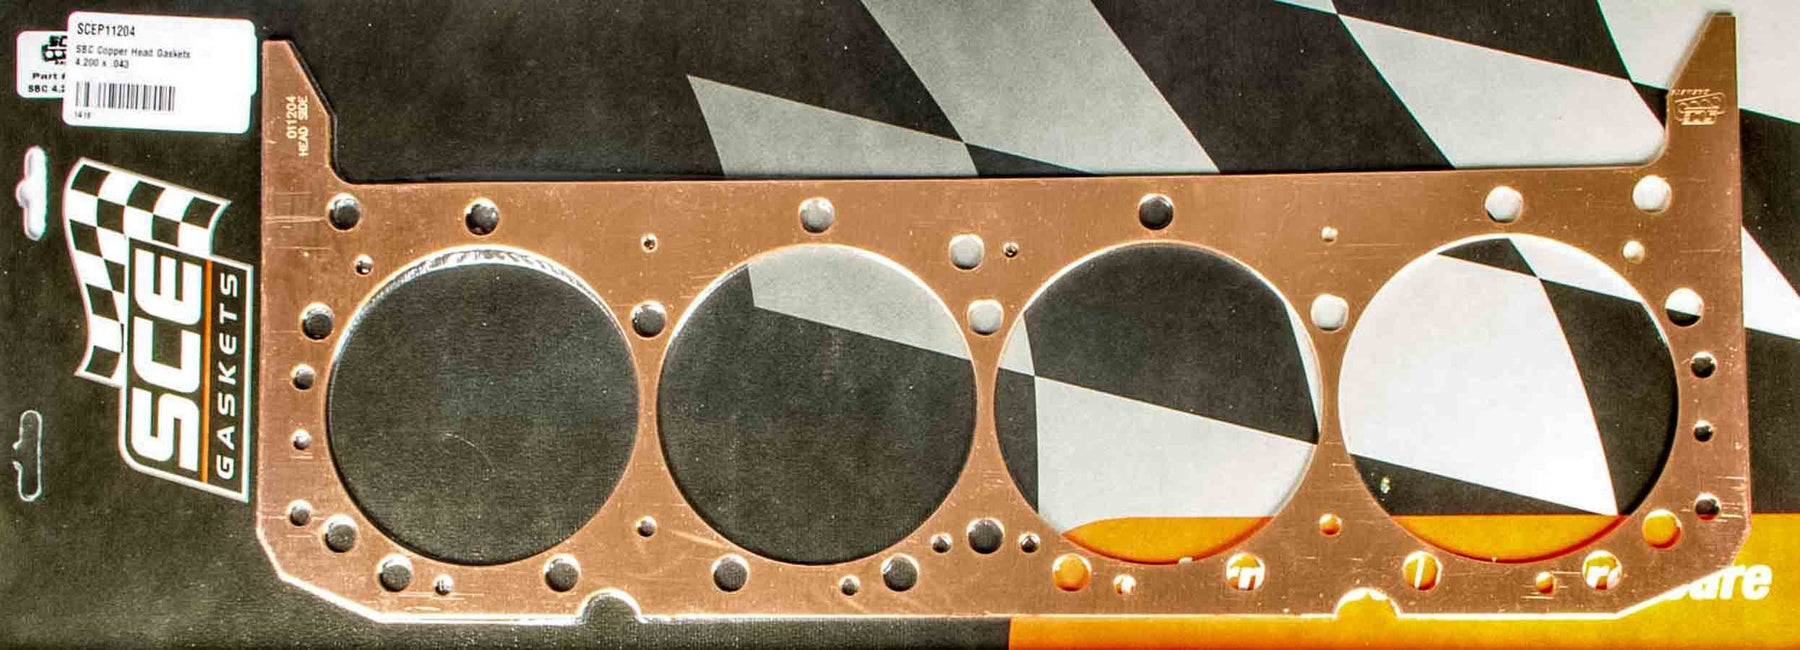 SBC Copper Head Gaskets Superseded 04/10/19 VD